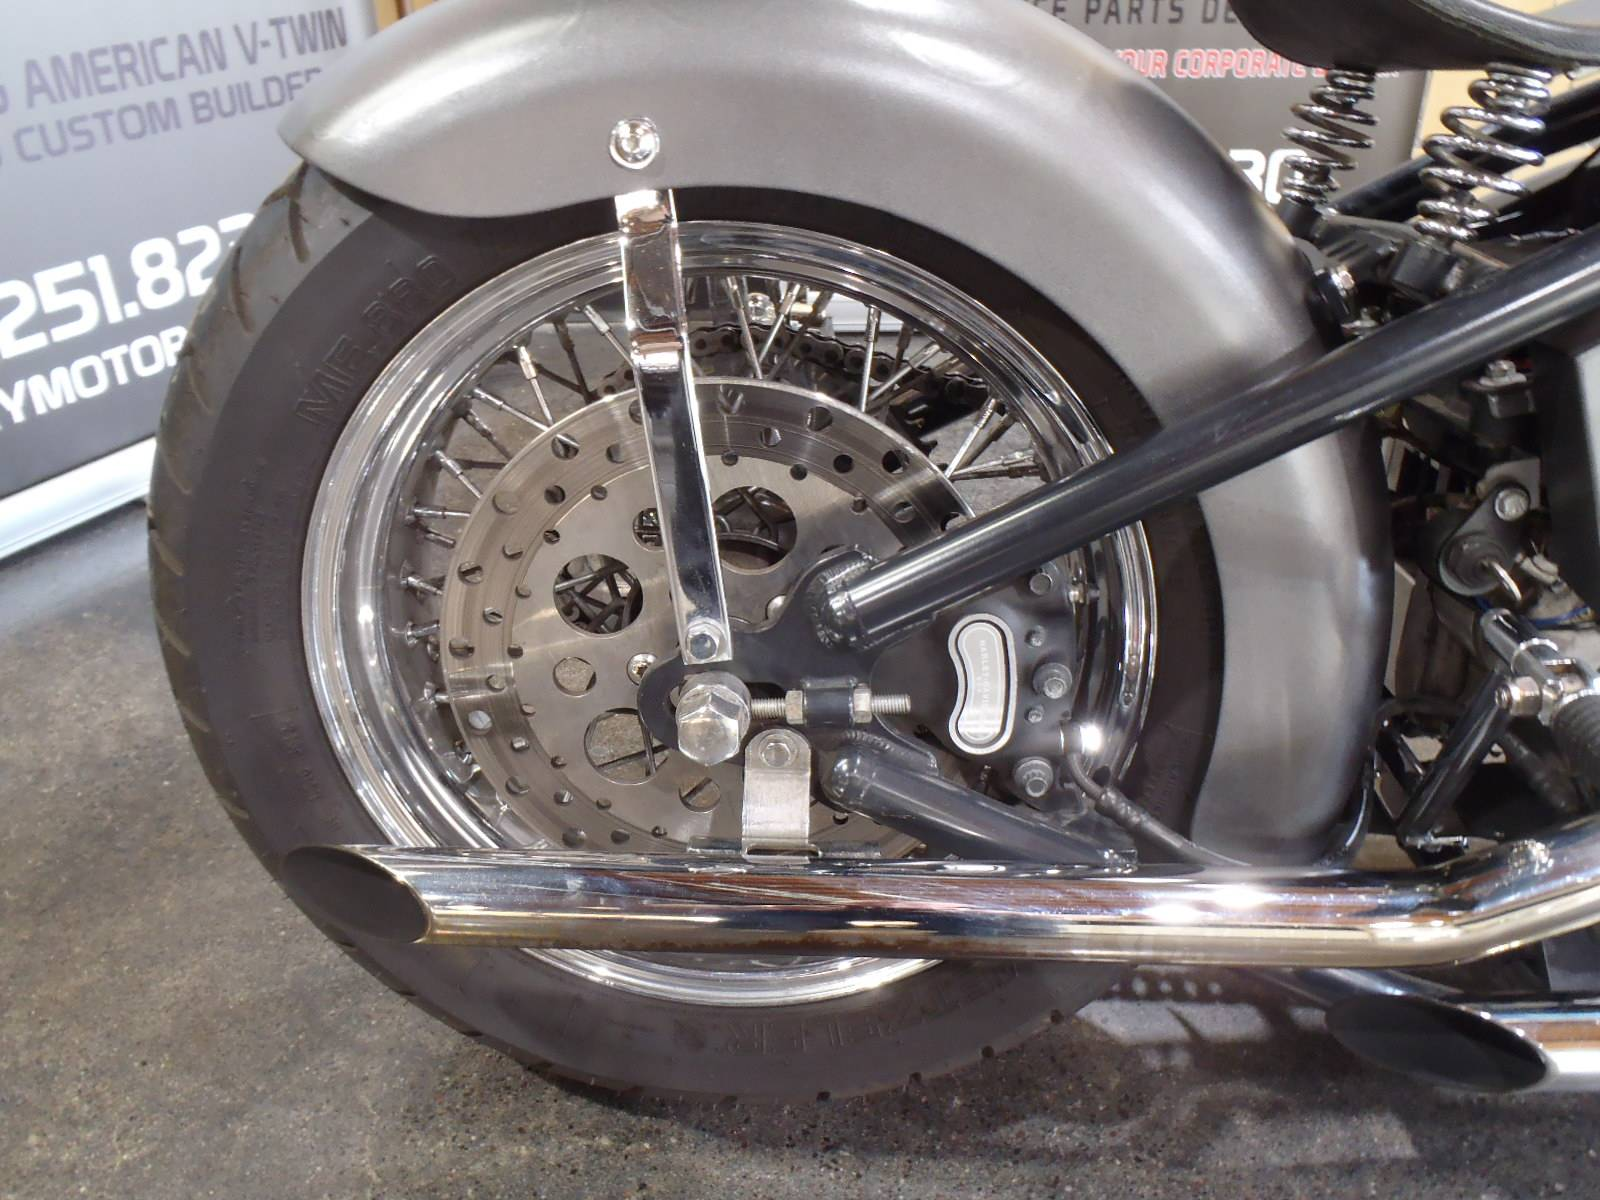 2006 Sucker Punch Sallys Choppers 66 BOBBER in South Saint Paul, Minnesota - Photo 8